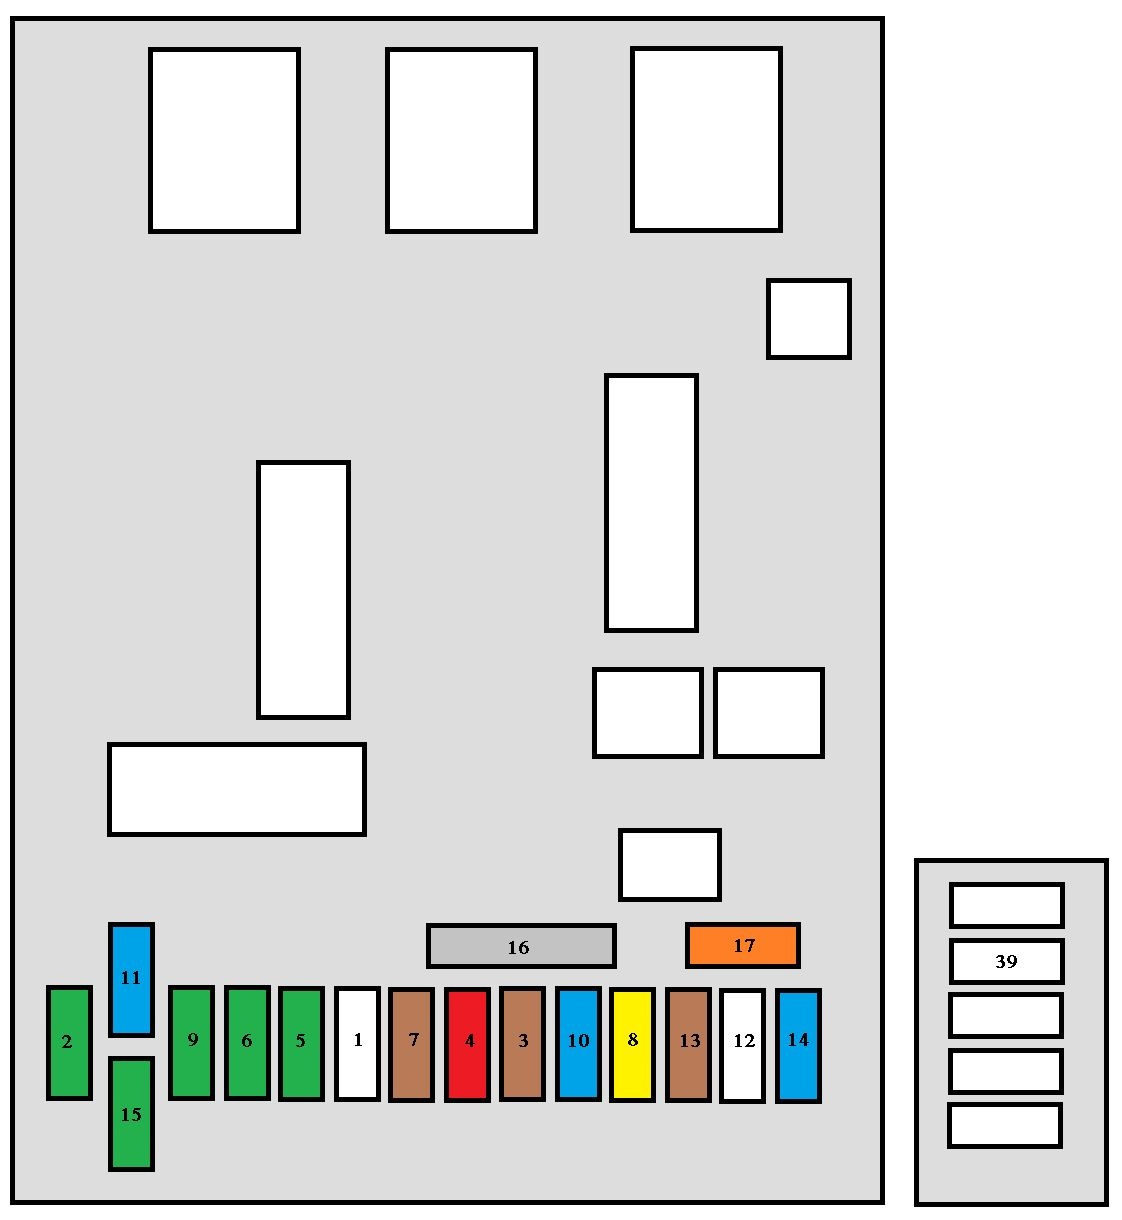 hight resolution of fuse box diagram peugeot 206 wiring library peugeot 206 1 4 hdi fuse box diagram fuse box